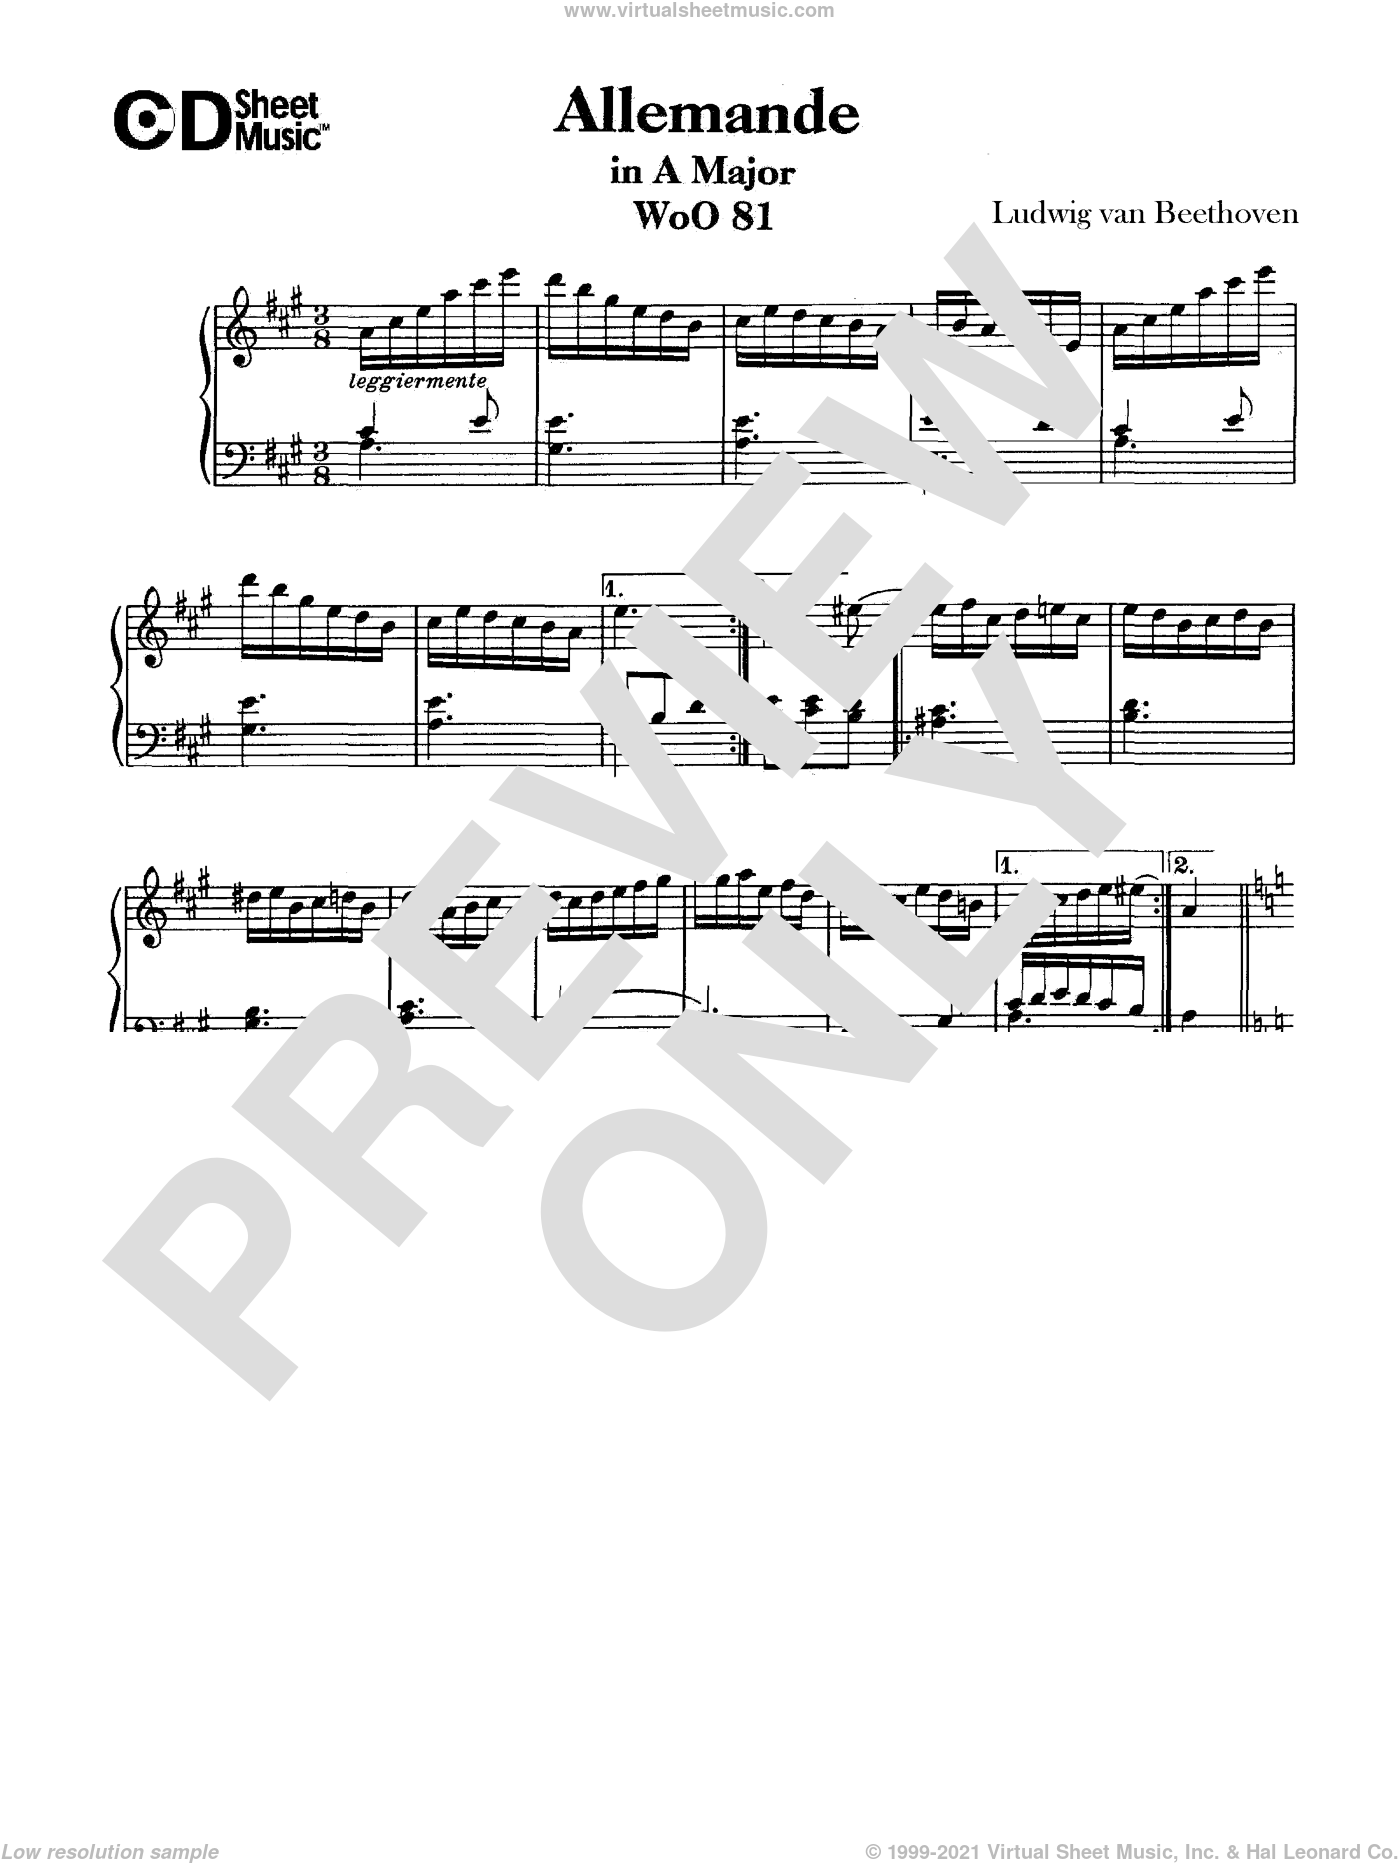 Allemande In A Major, Woo 81 sheet music for piano solo by Ludwig van Beethoven. Score Image Preview.